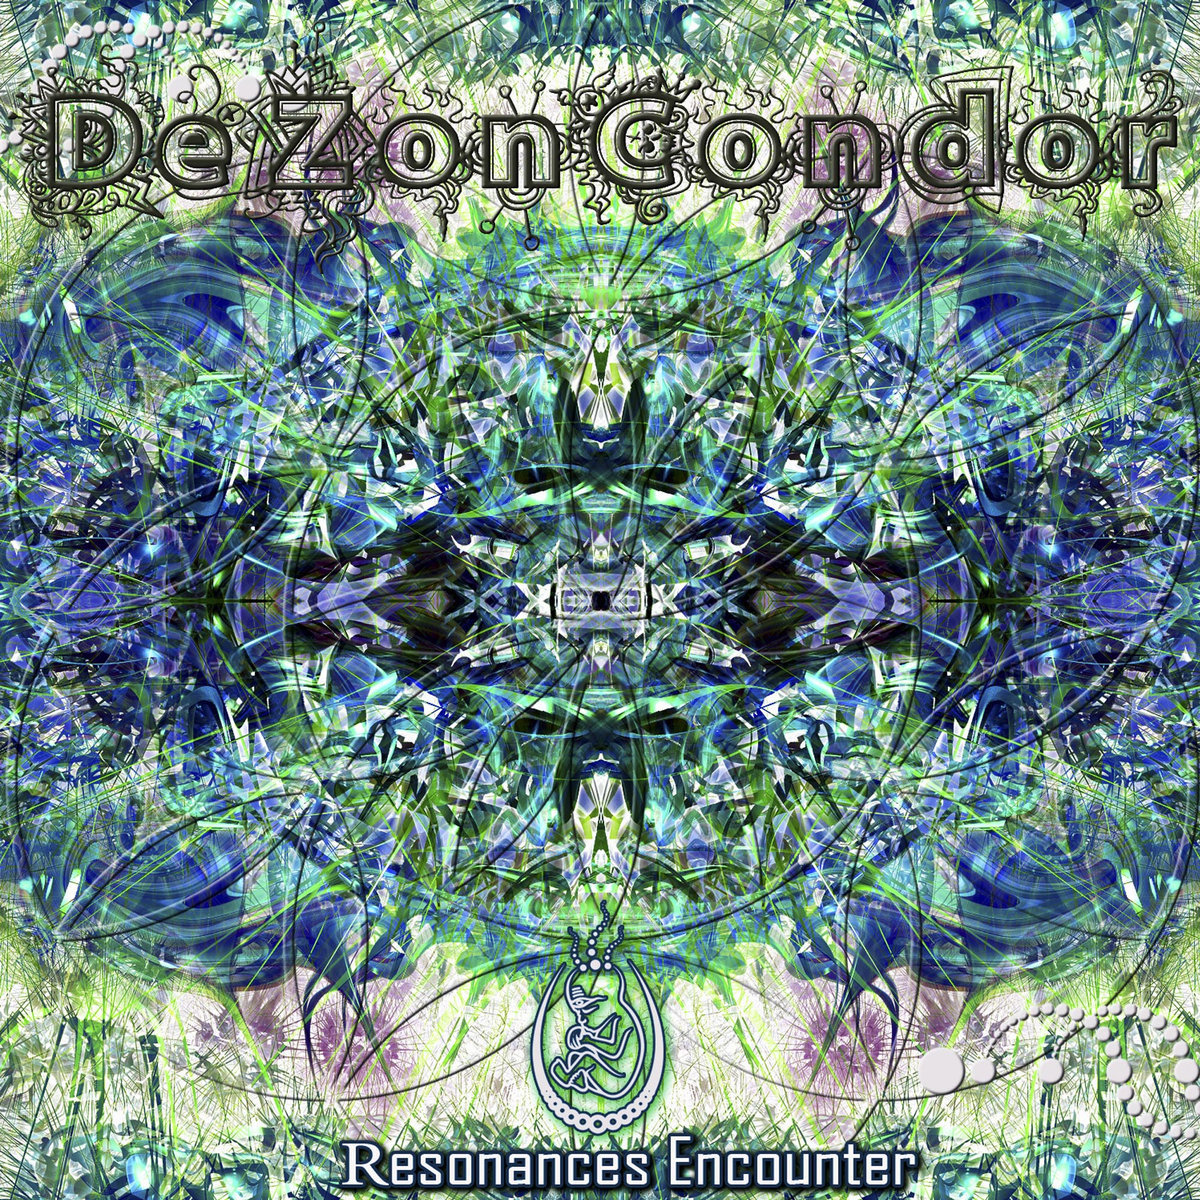 DezonCondor - Salvaguarda @ 'Resonances Encounter' album (ambient, electronic)